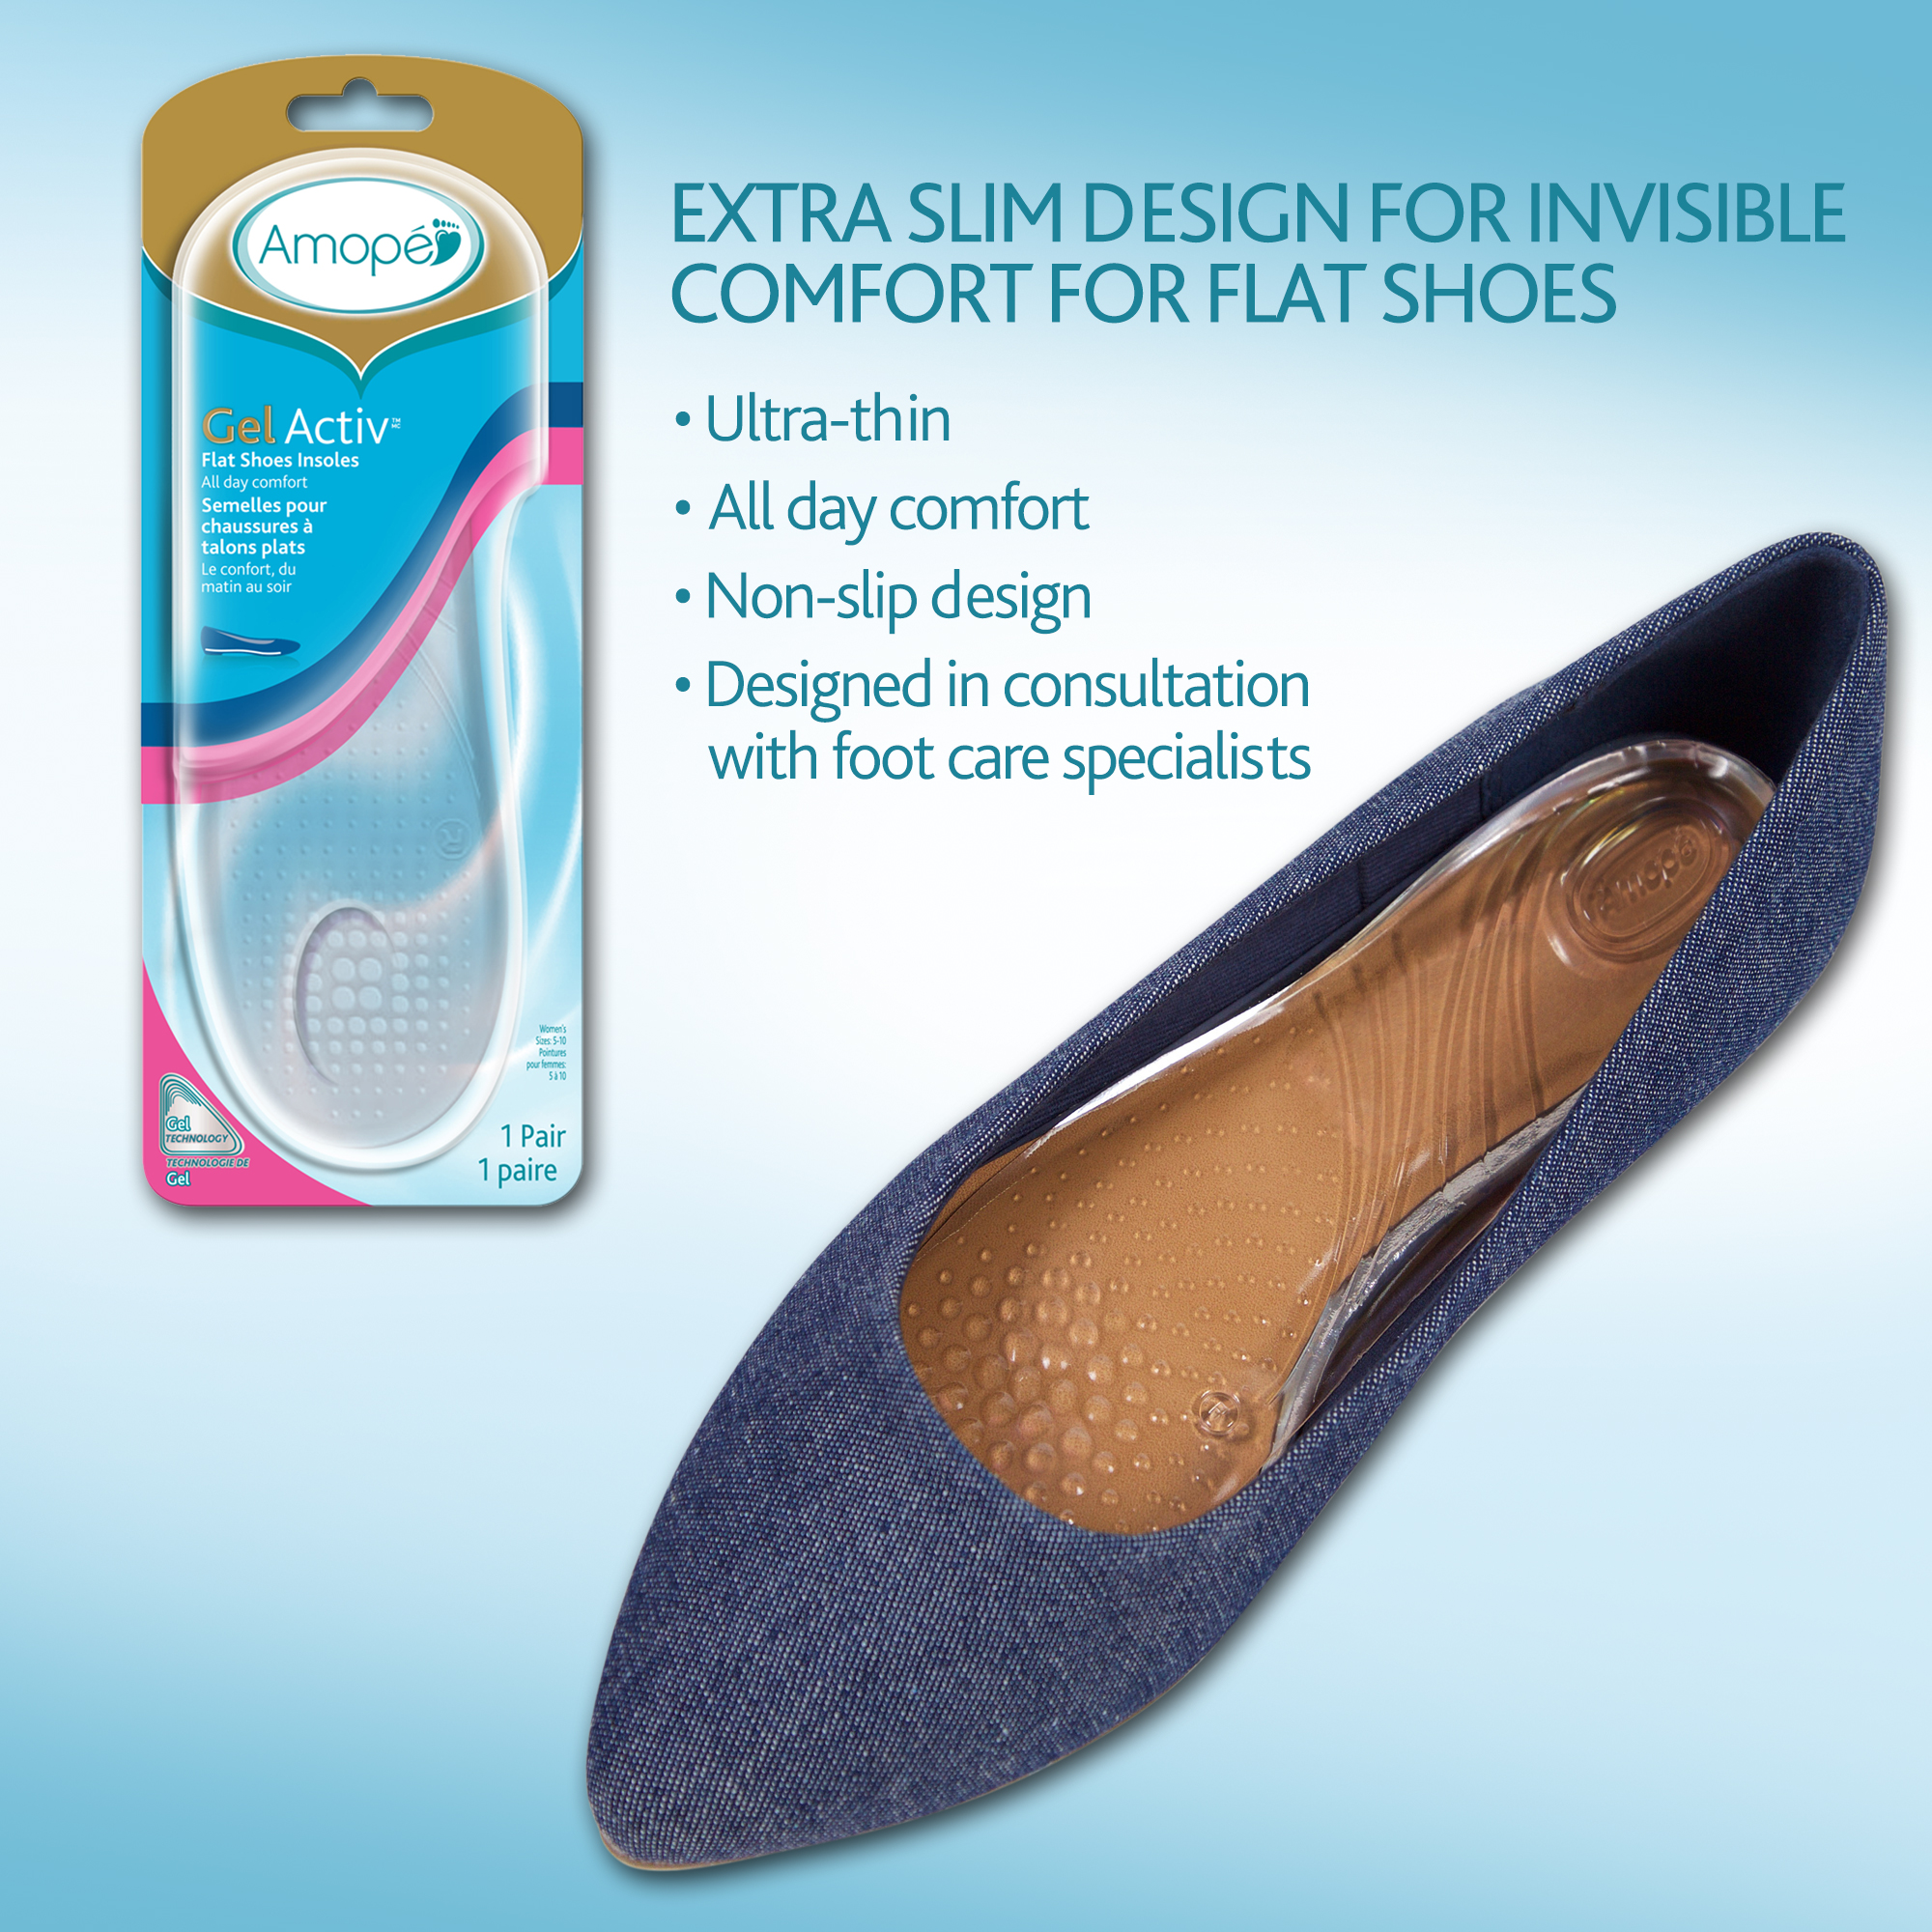 Amope GelActiv Flat Shoes Insoles for